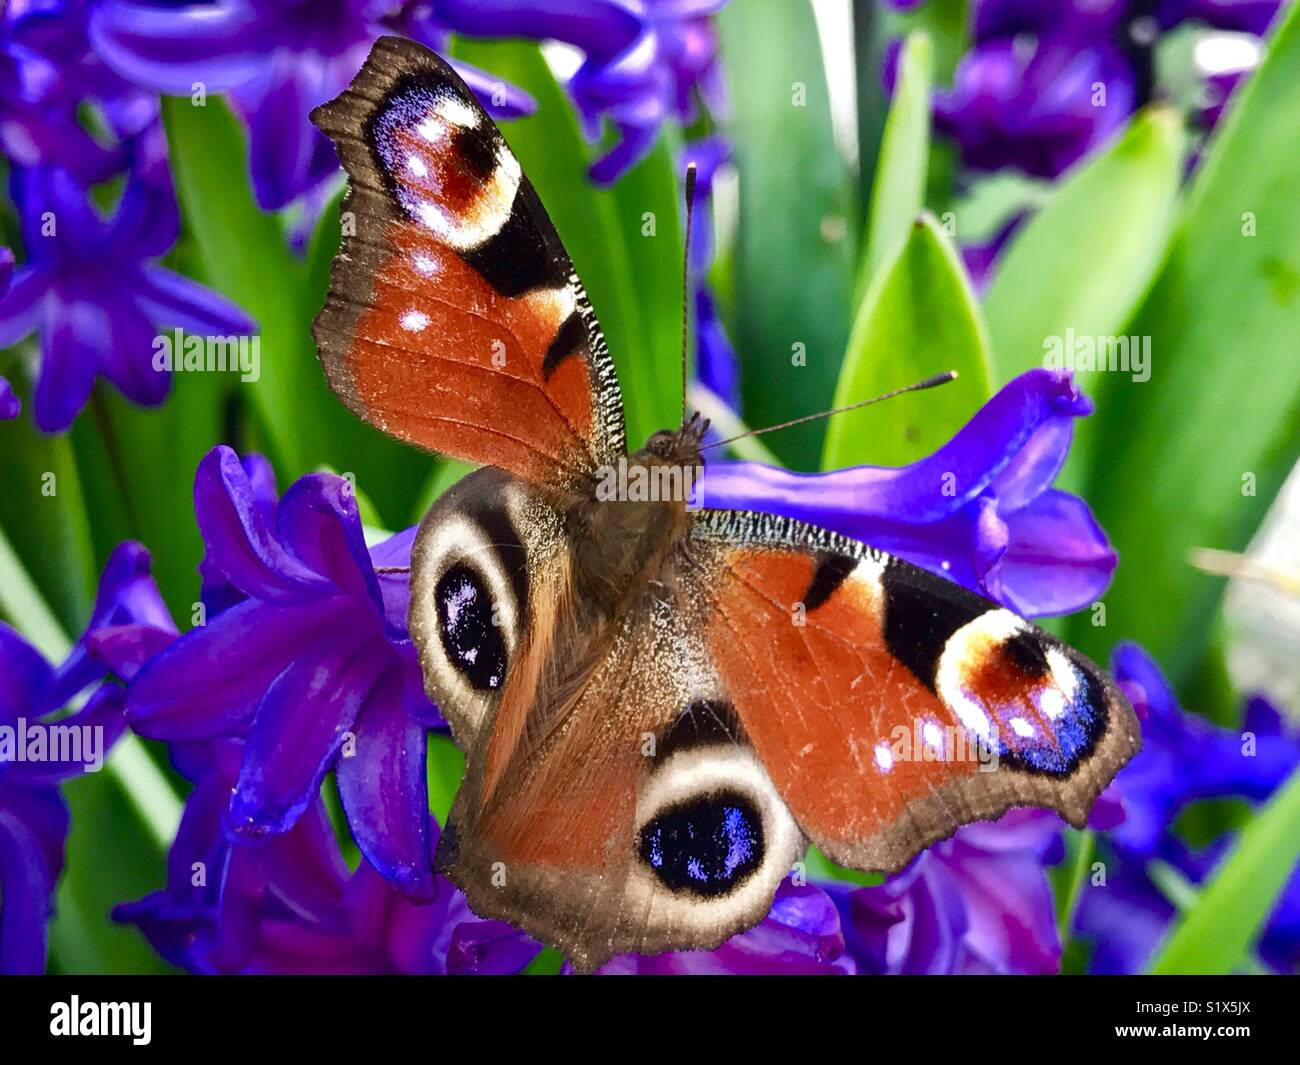 Peacock butterfly on violett flowers Stock Photo